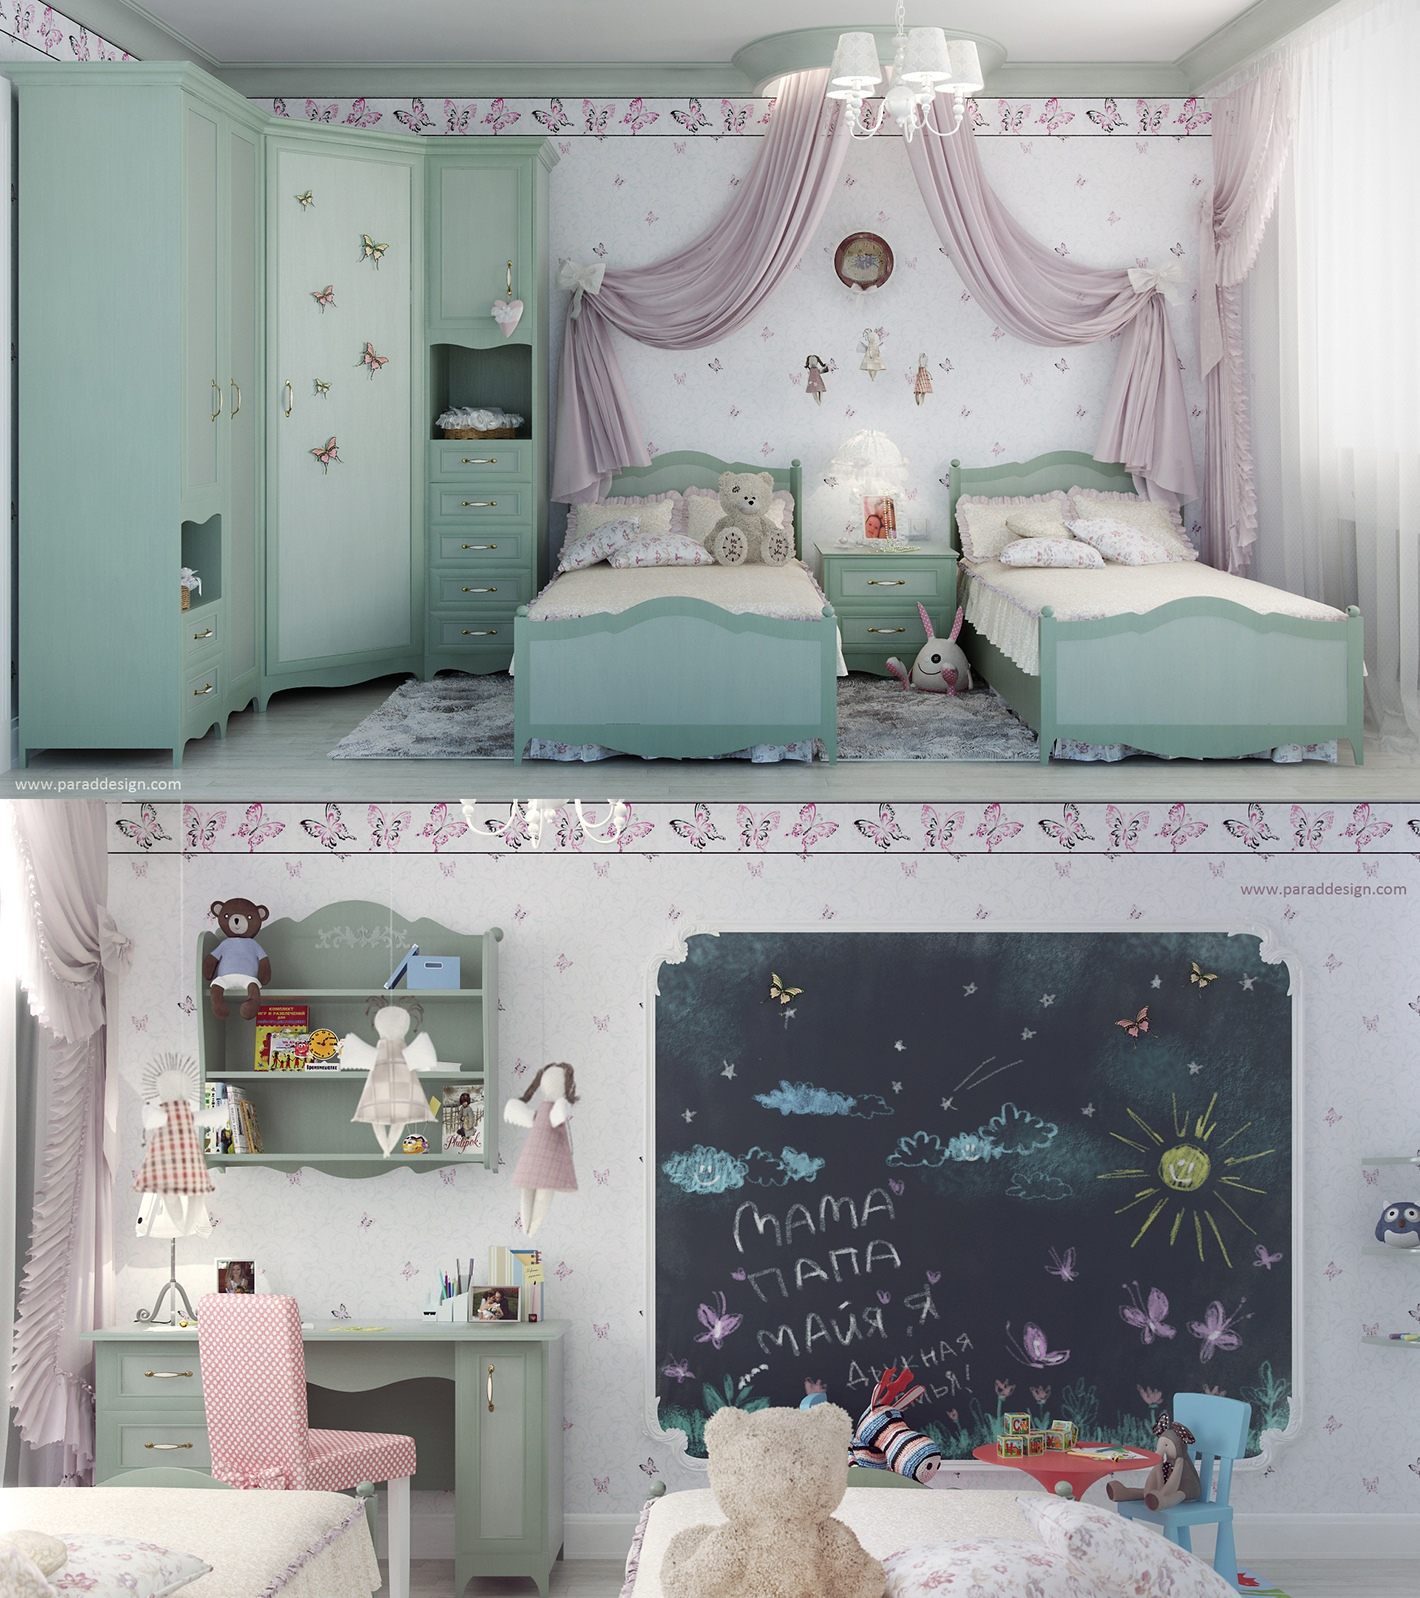 2 little girls bedroom 7 interior design ideas - Photos of girls bedroom ...